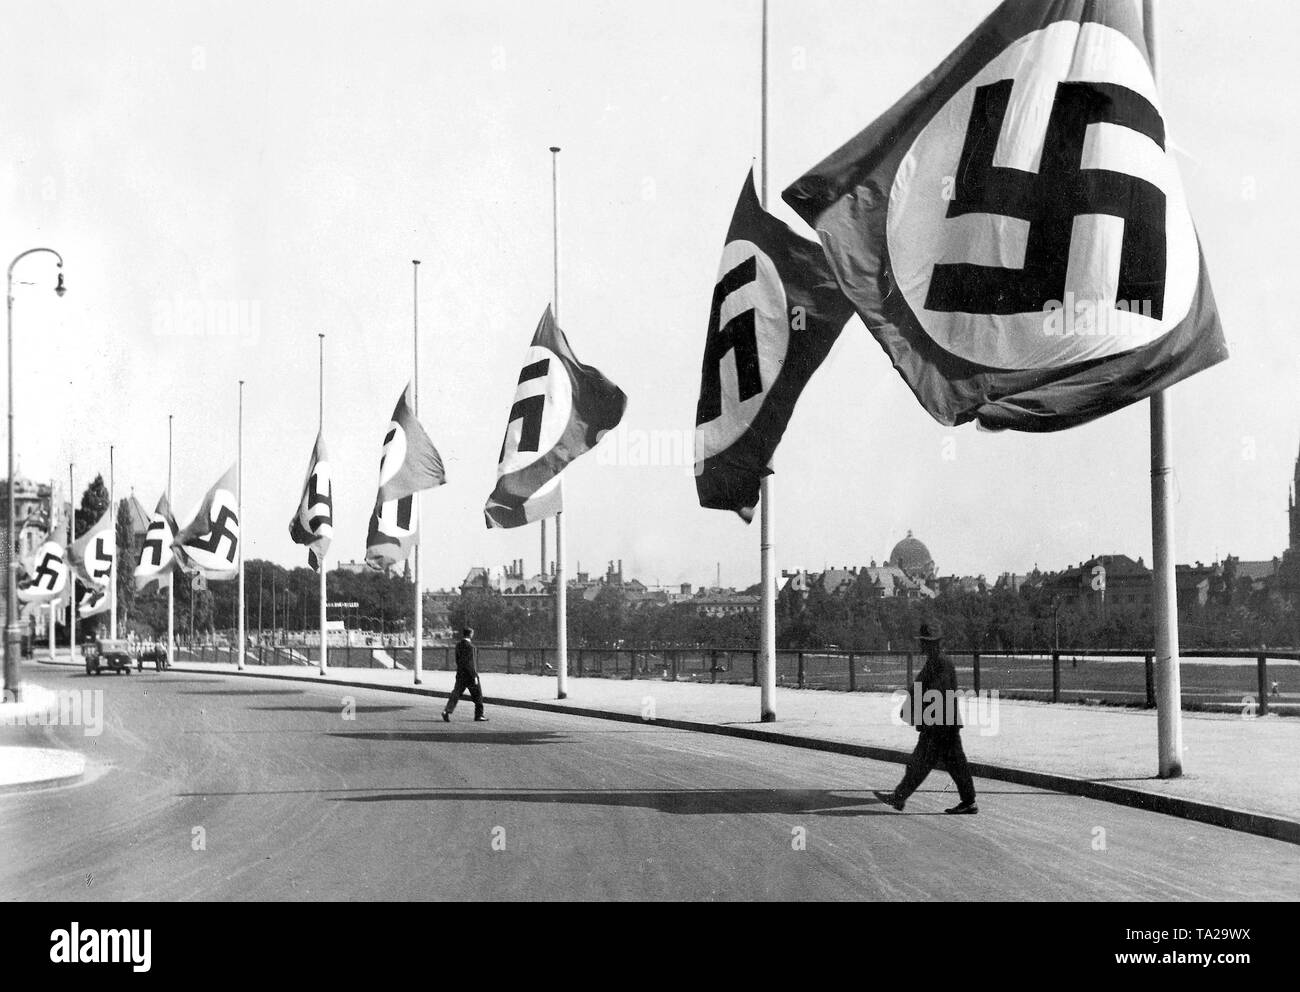 Swastika flags at half-mast in Munich on the Theresienhoehe at the fairgrounds on the occasion of the death of President Paul von Hindenburg on 2 August 1934. - Stock Image